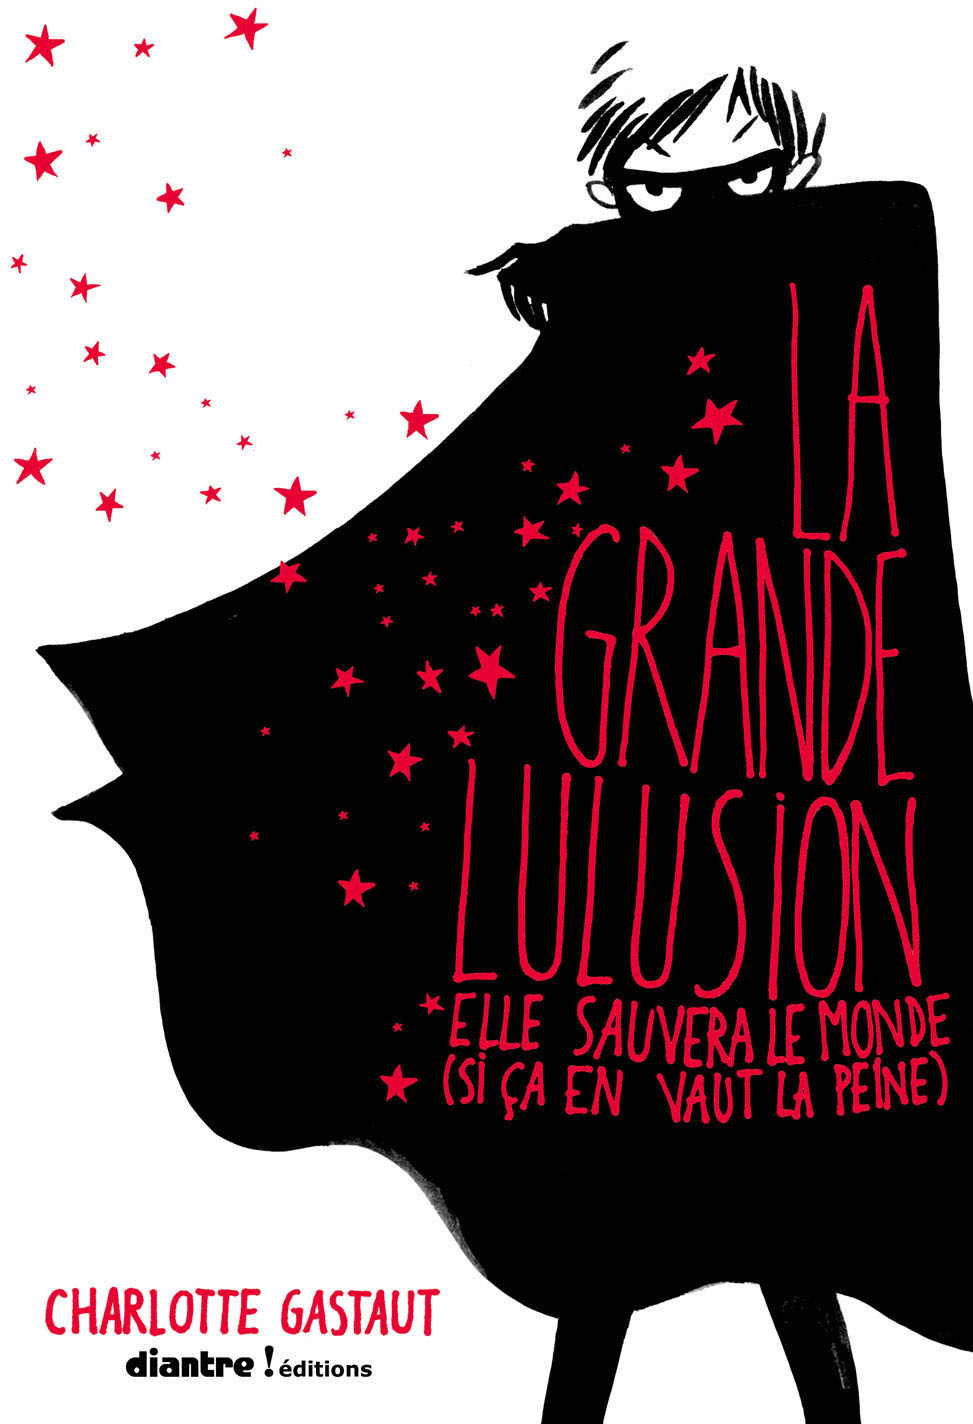 Couverture Lulusion.jpg